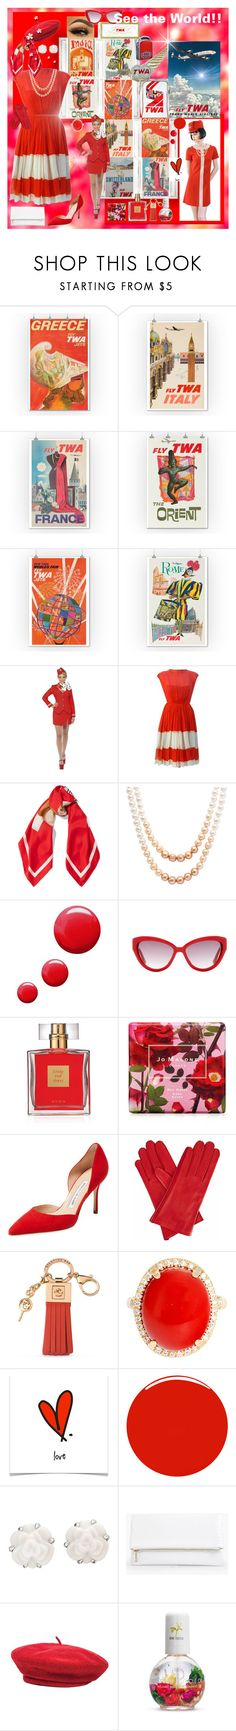 """""""RED, WHITE & TRAVEL"""" by kalenalexis ❤ liked on Polyvore featuring Giclee Gallery, Hostess, Moschino, Honora, Topshop, Avon, Jo Malone, Manolo Blahnik, Gizelle Renee and Spartina 449"""